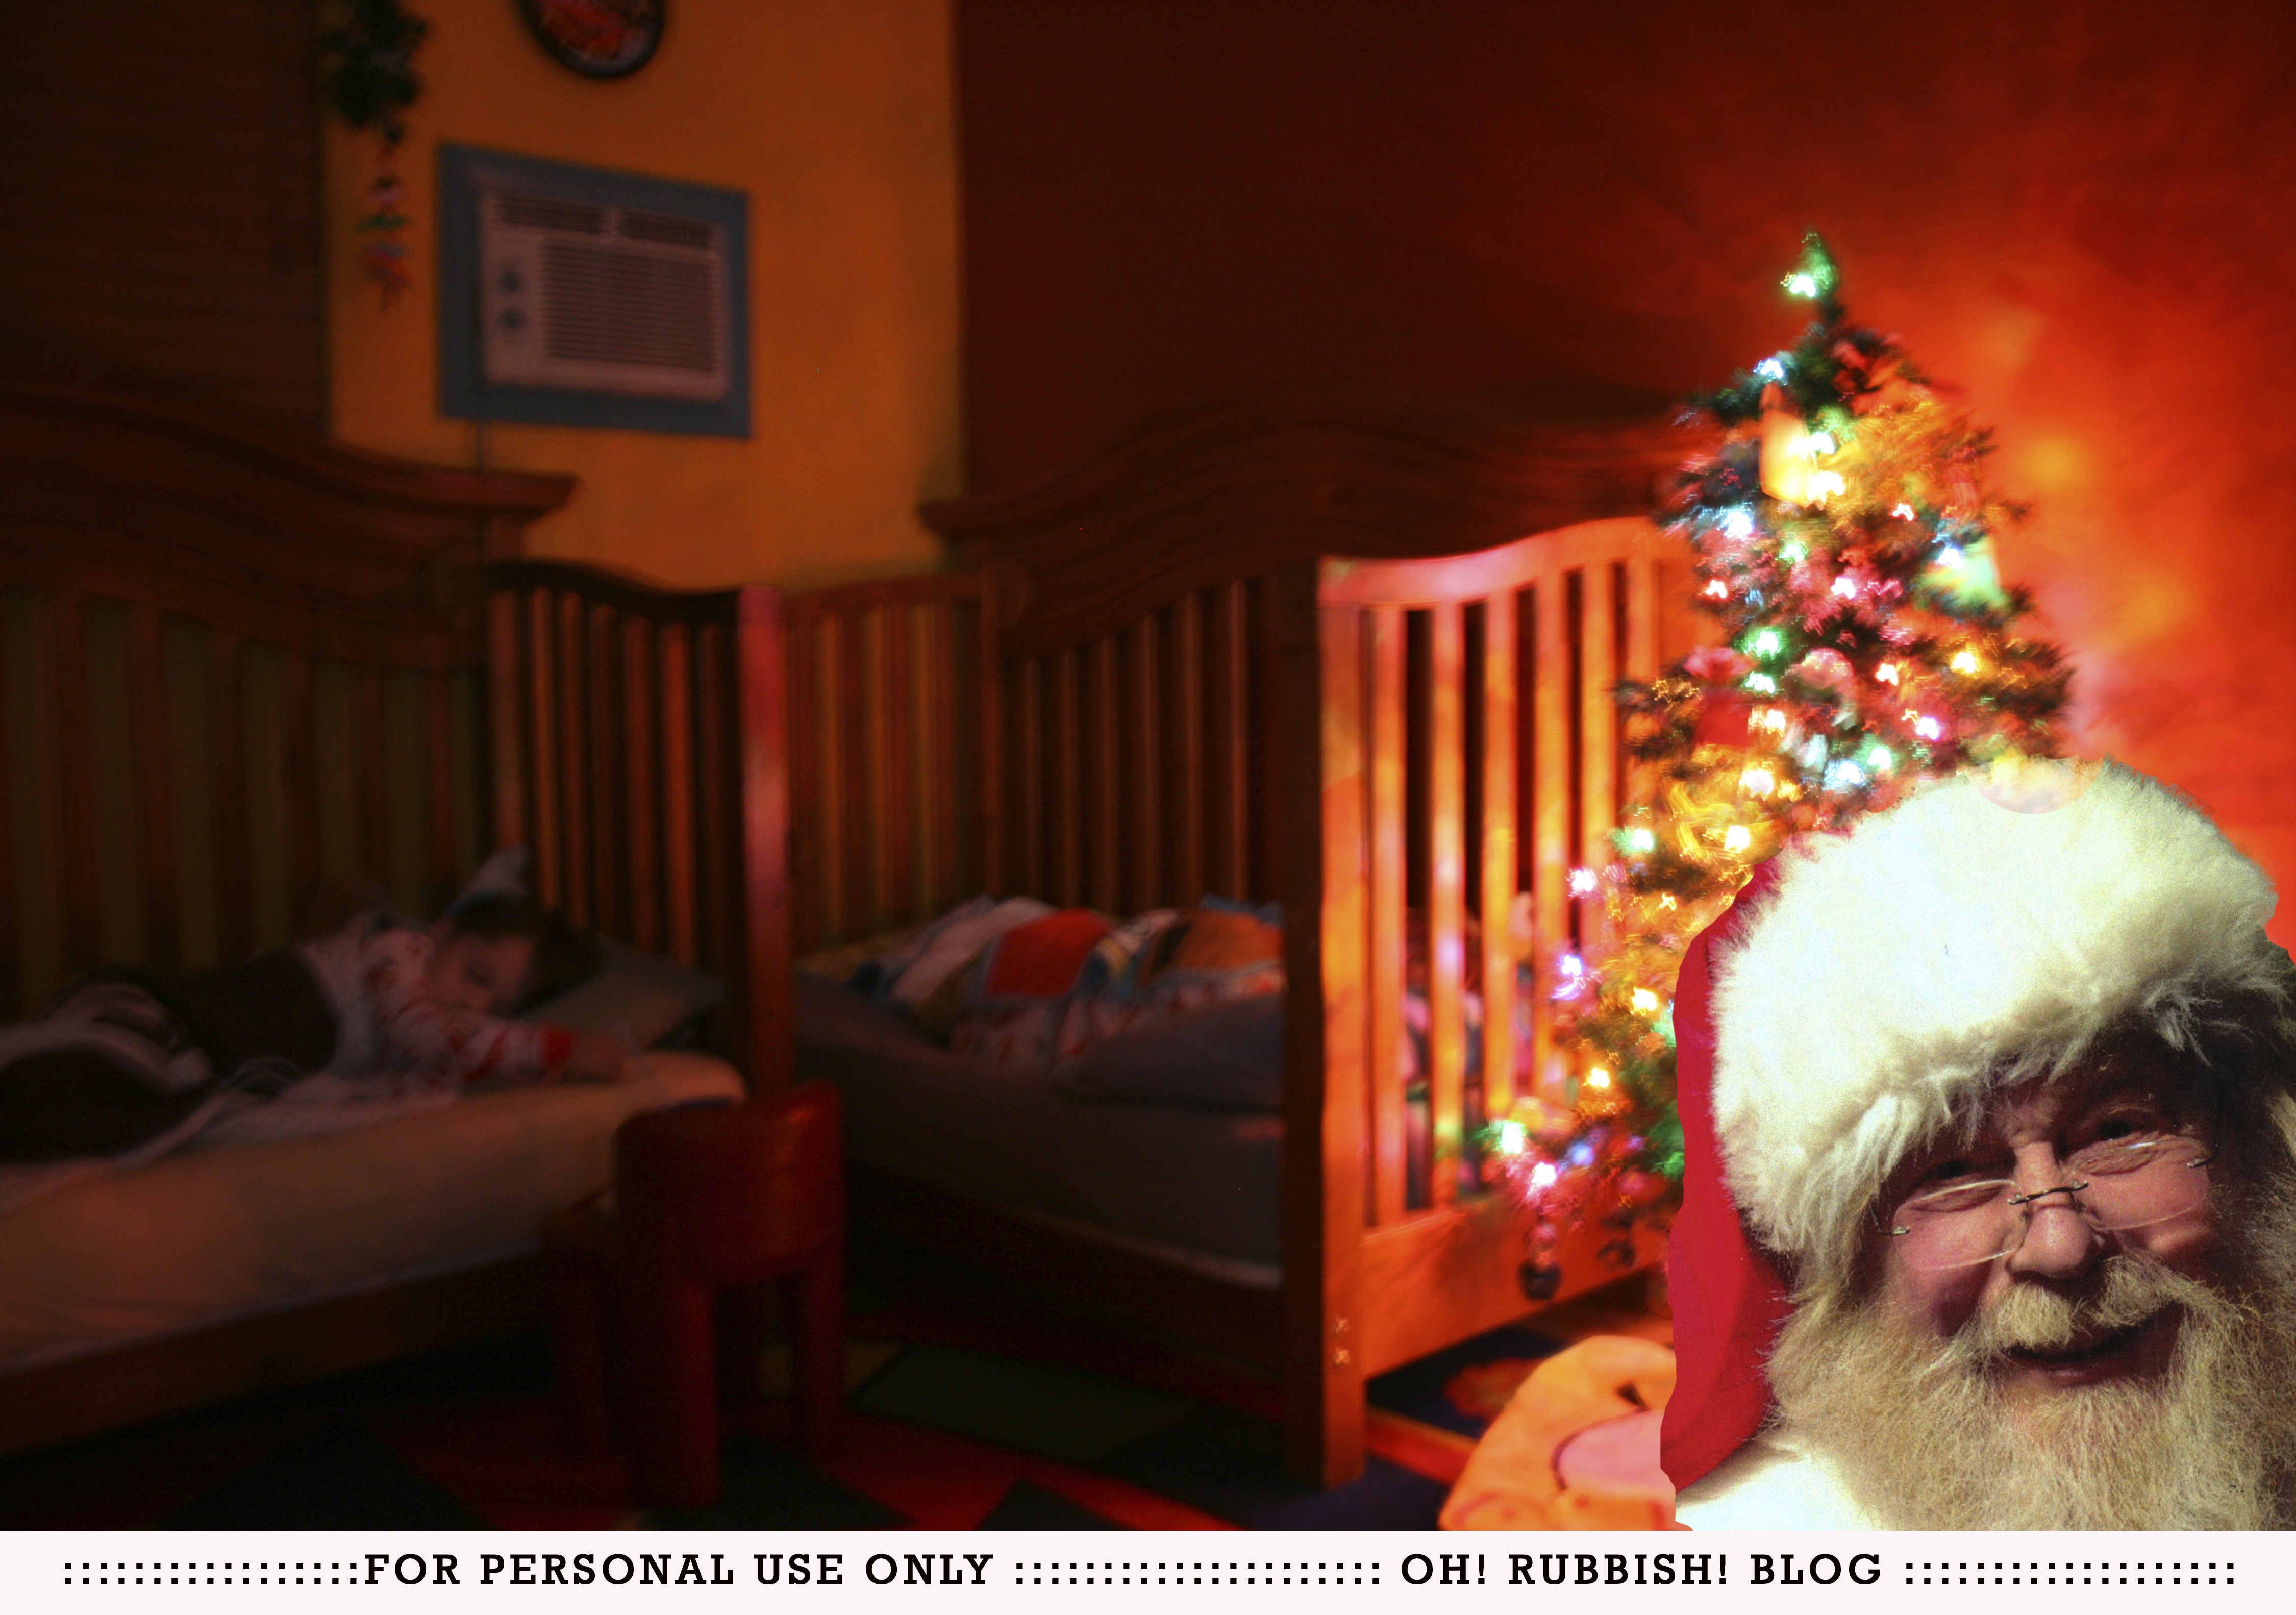 I Got A Picture Of Santa In My House! :: DIY :: Photo Of Santa In My House  ::